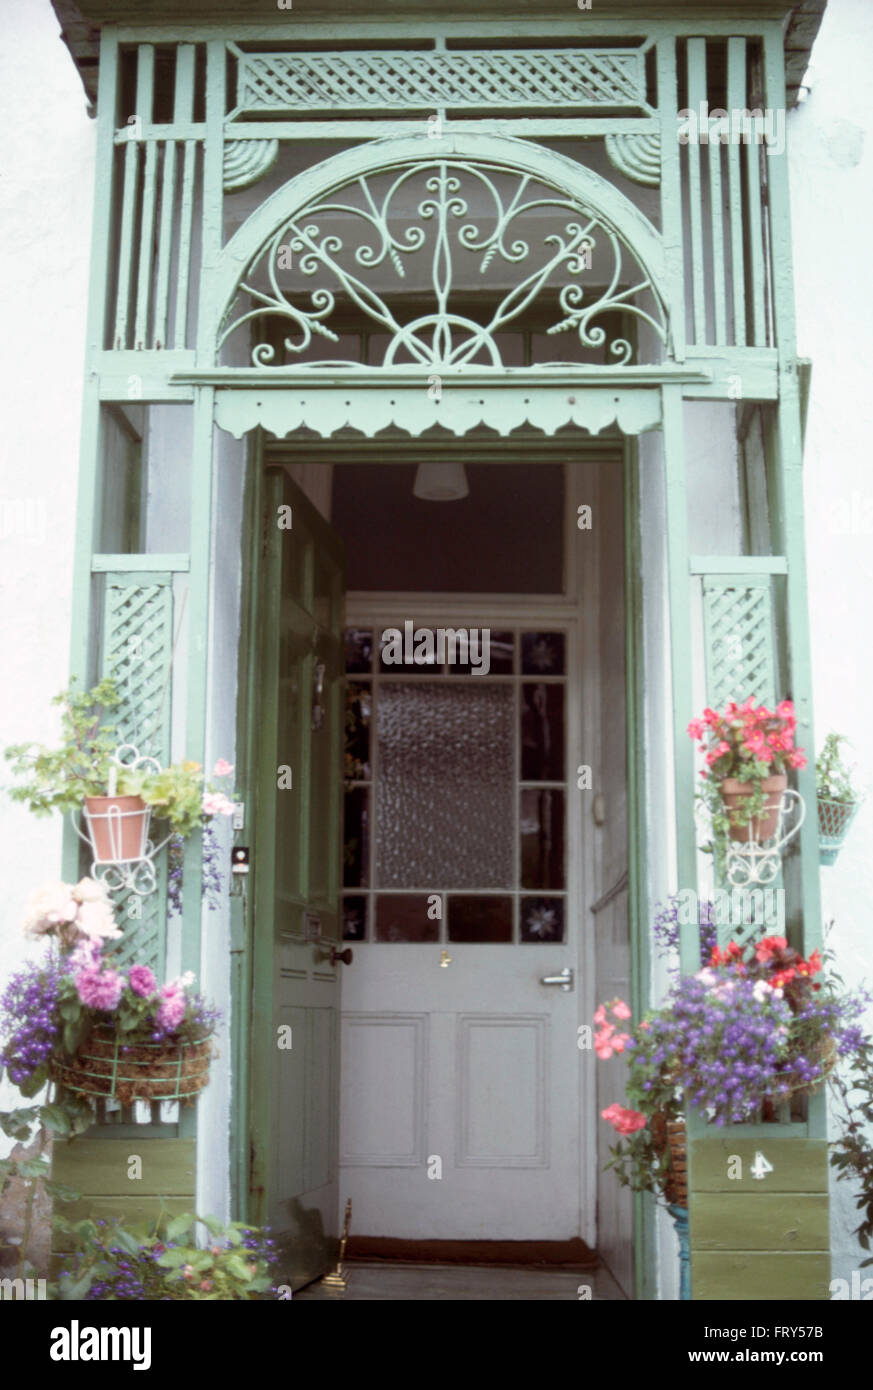 Hanging Baskets On Ornate Porch On A Half Glazed Stained